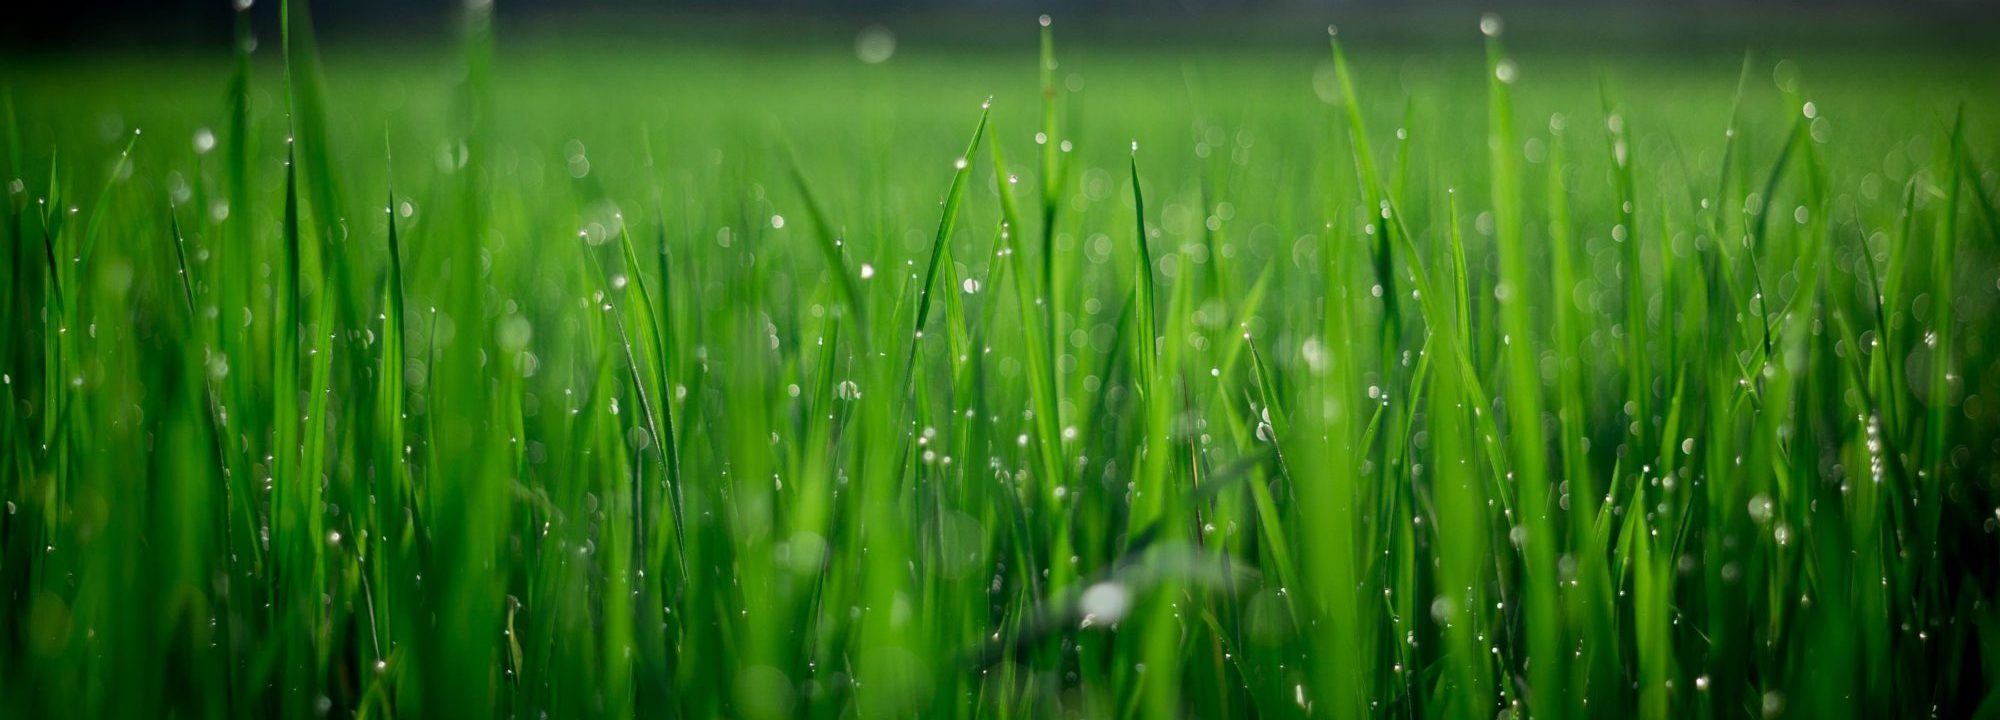 artificial grass by halafurniture